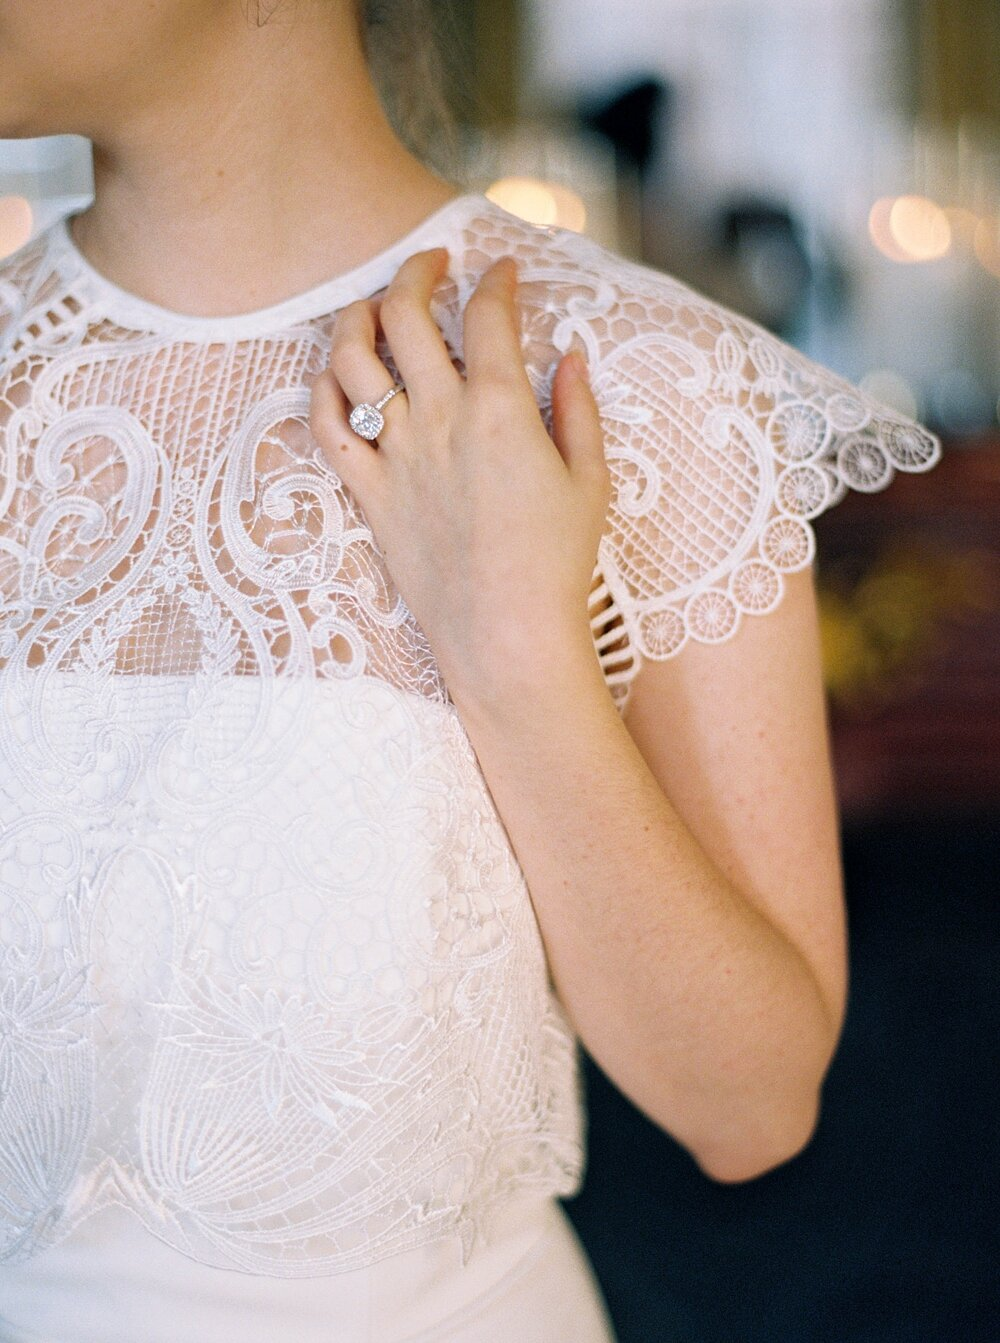 Ring detail shot, bride's hand against her collar bone with a lace top over her wedding gown